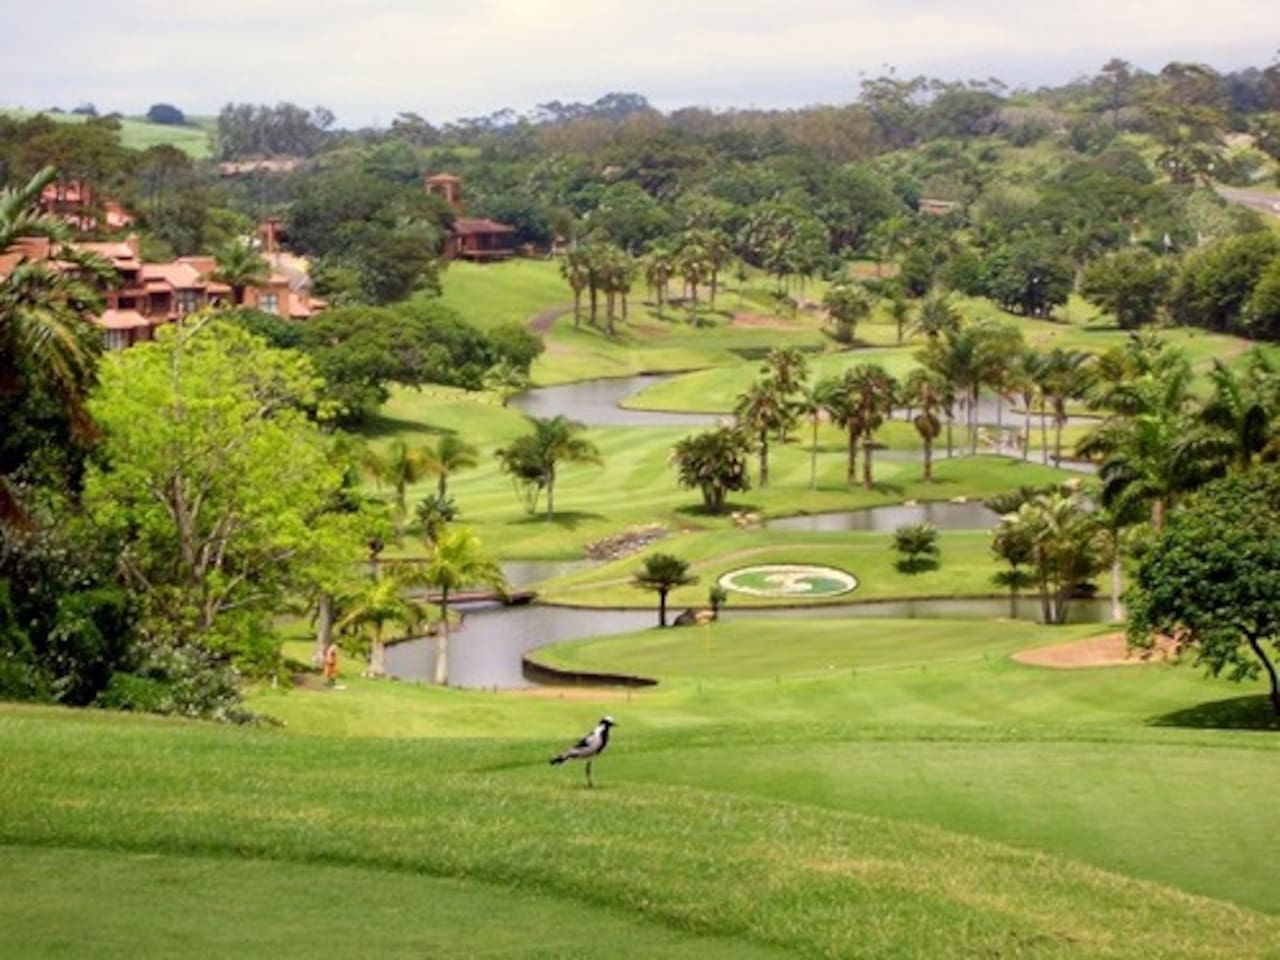 San Lameer 18-hole championship golf course